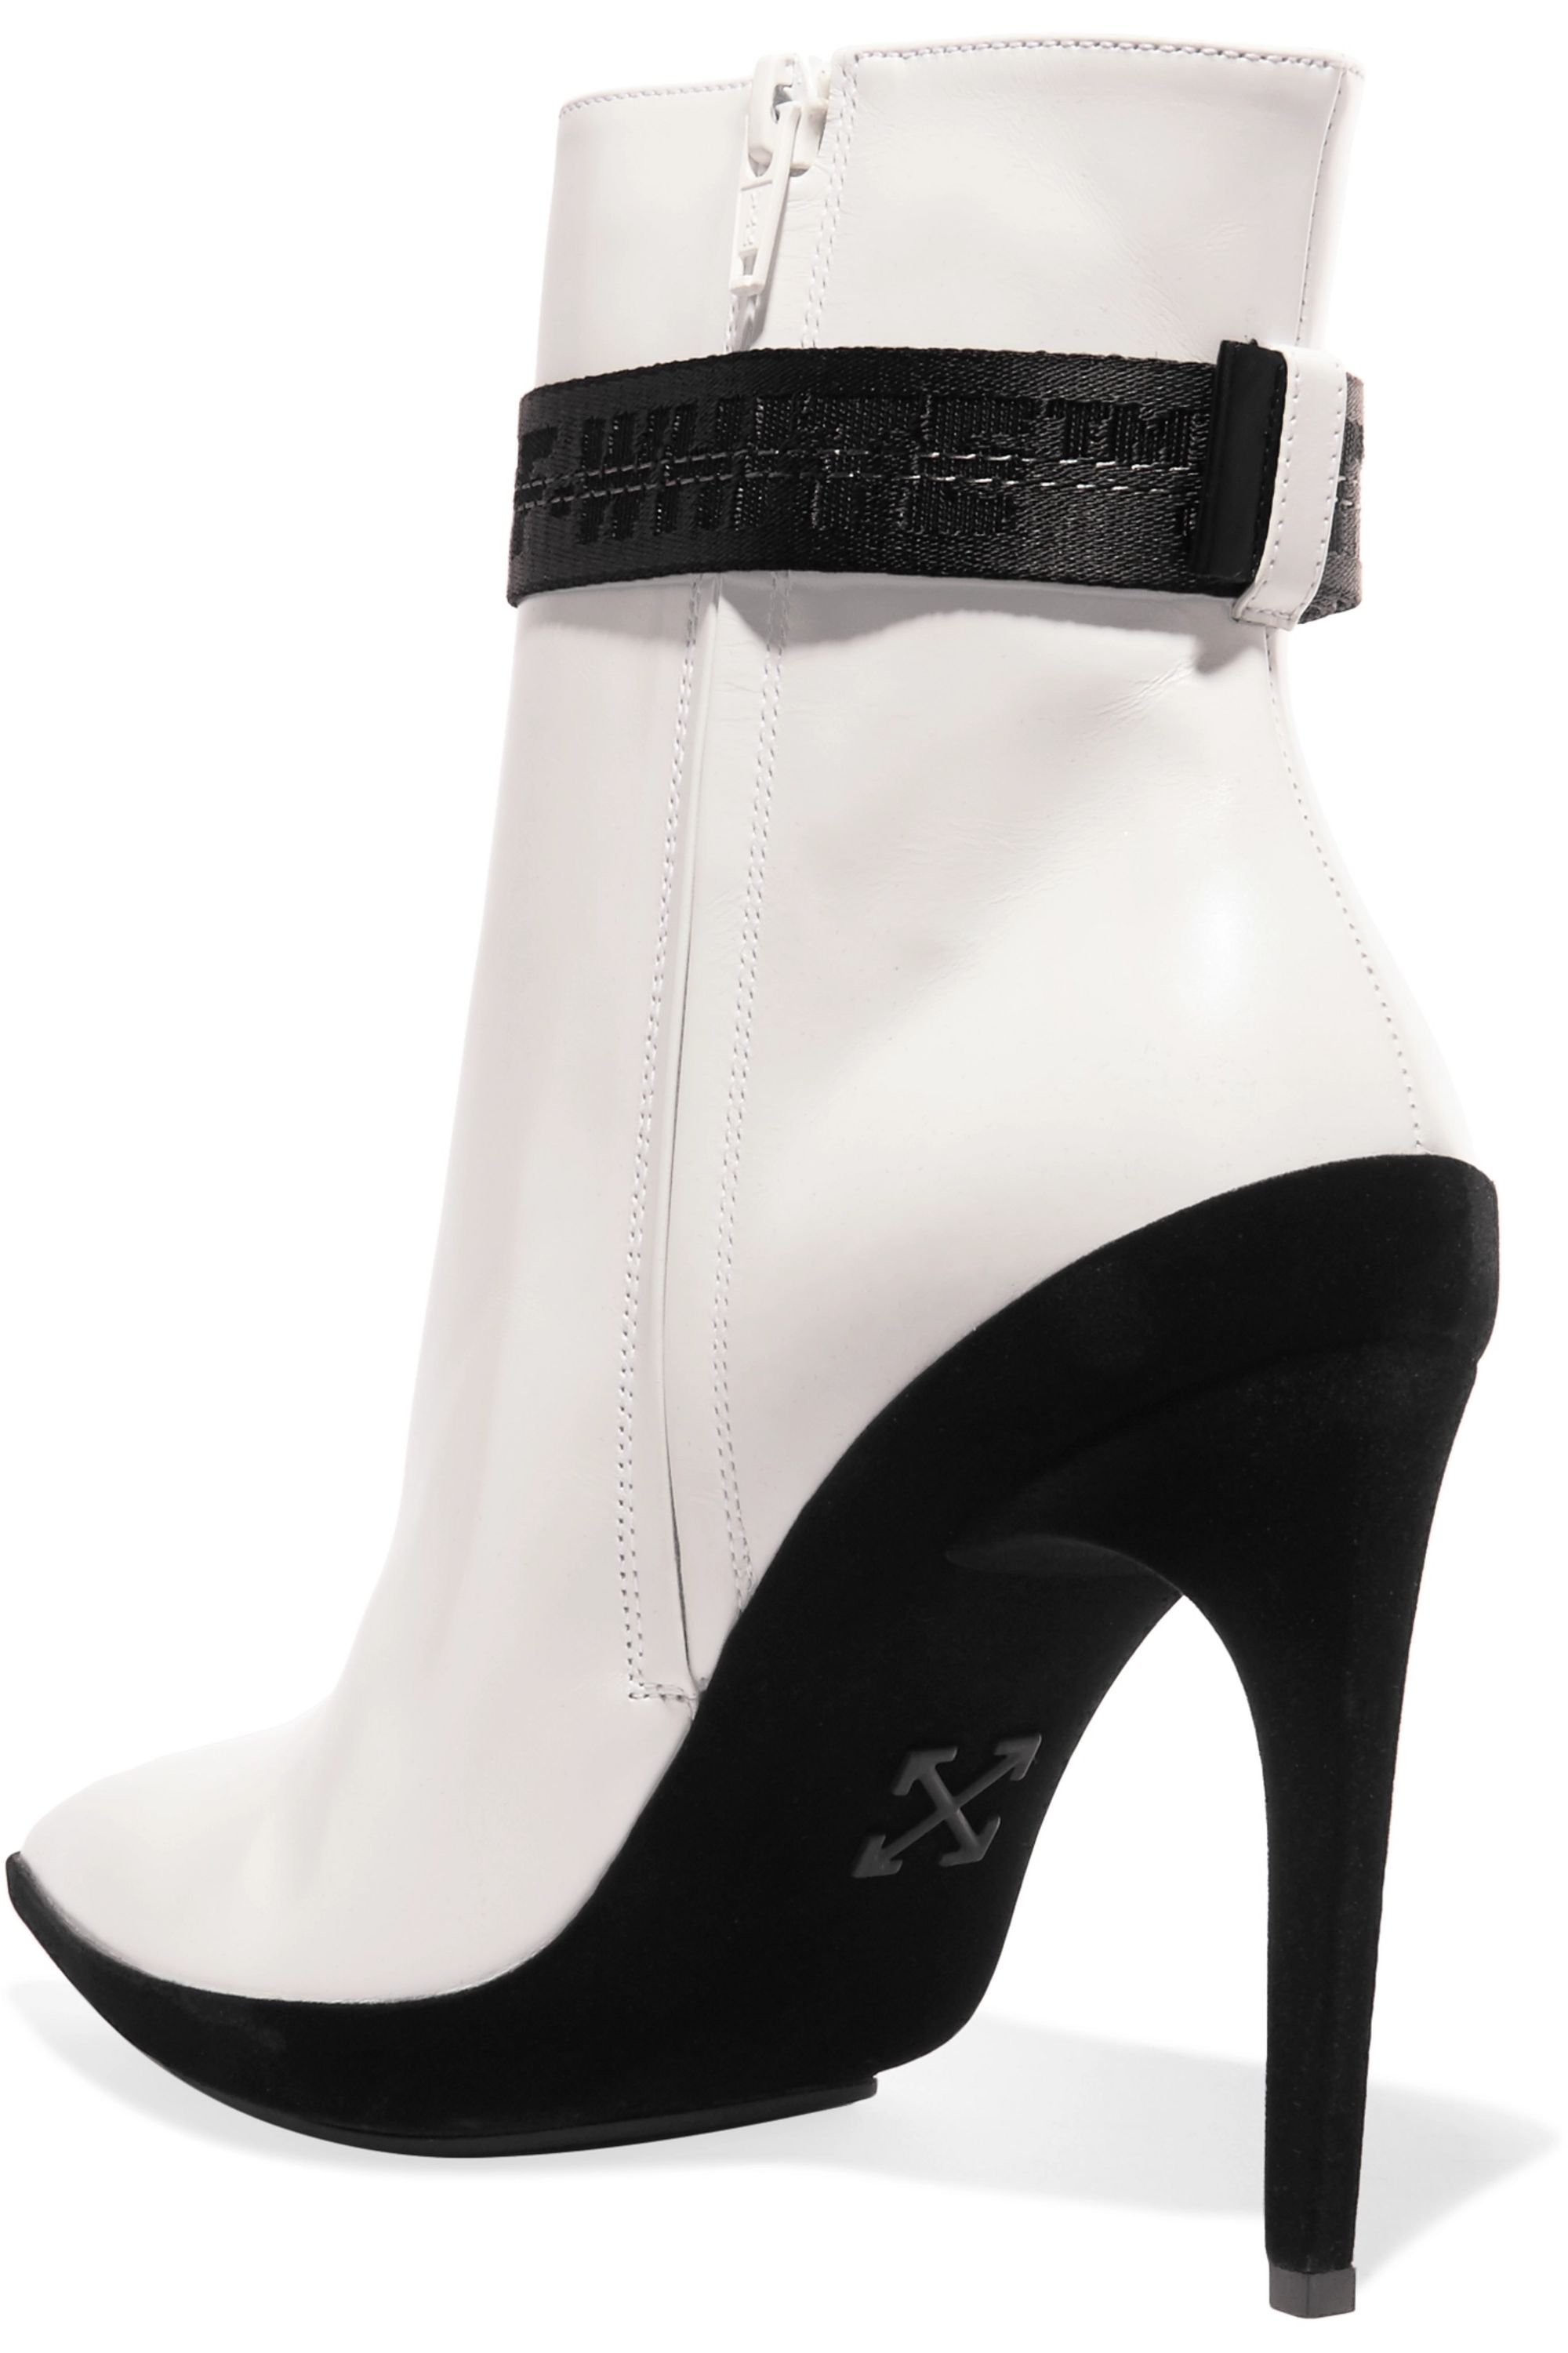 Off-White For Walking printed leather ankle boots